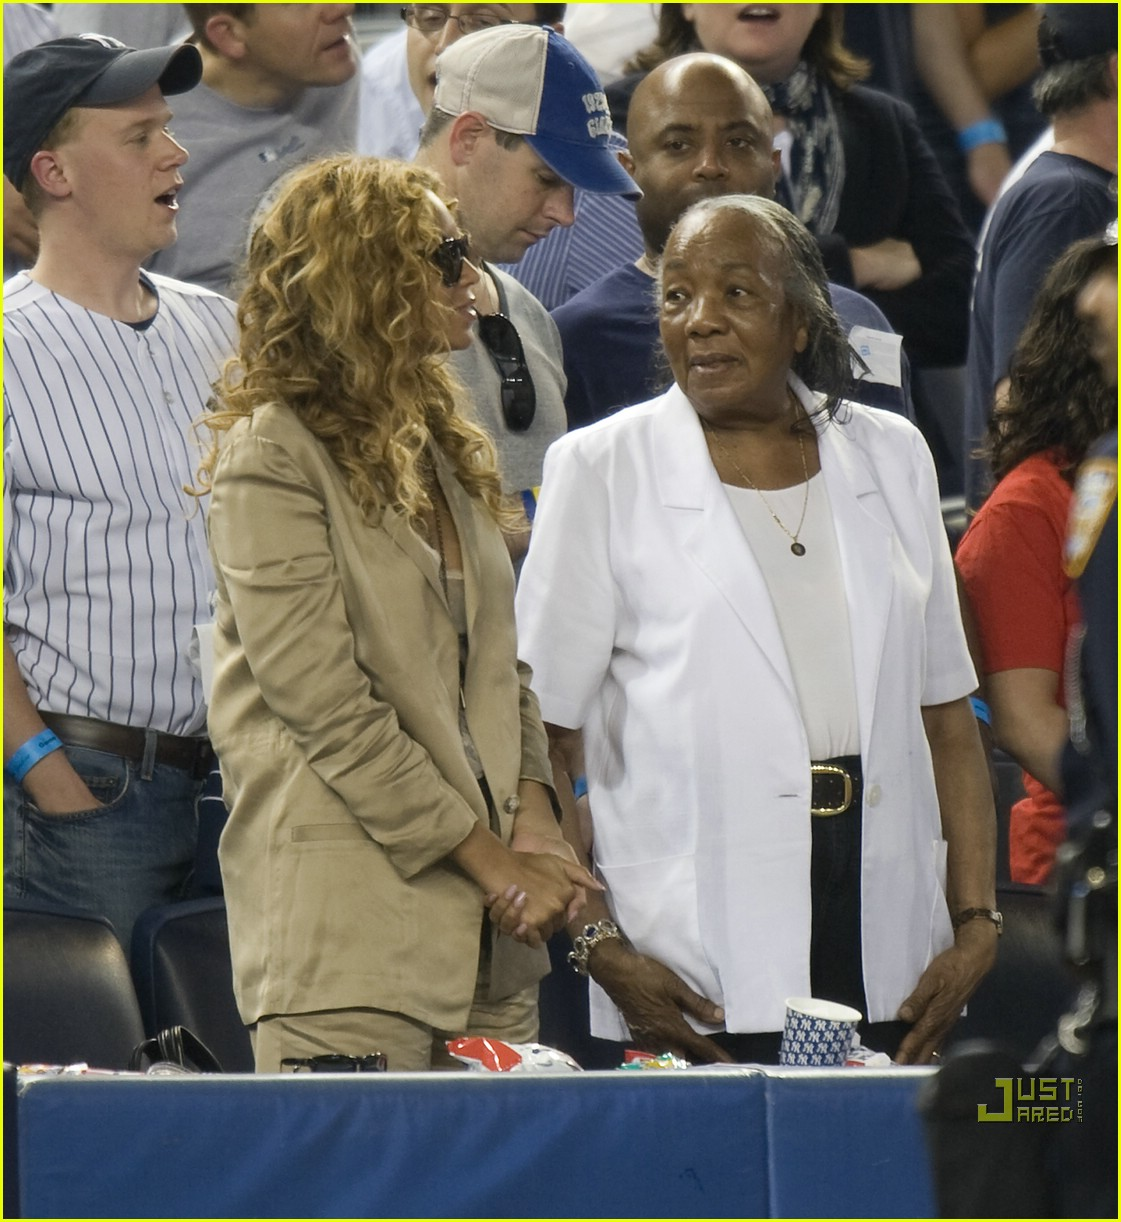 Jay Z Mother and Sister http://muse-and-vices.blogspot.com/2010/05/beyonce-does-baseball-with-jay-z-his_18.html